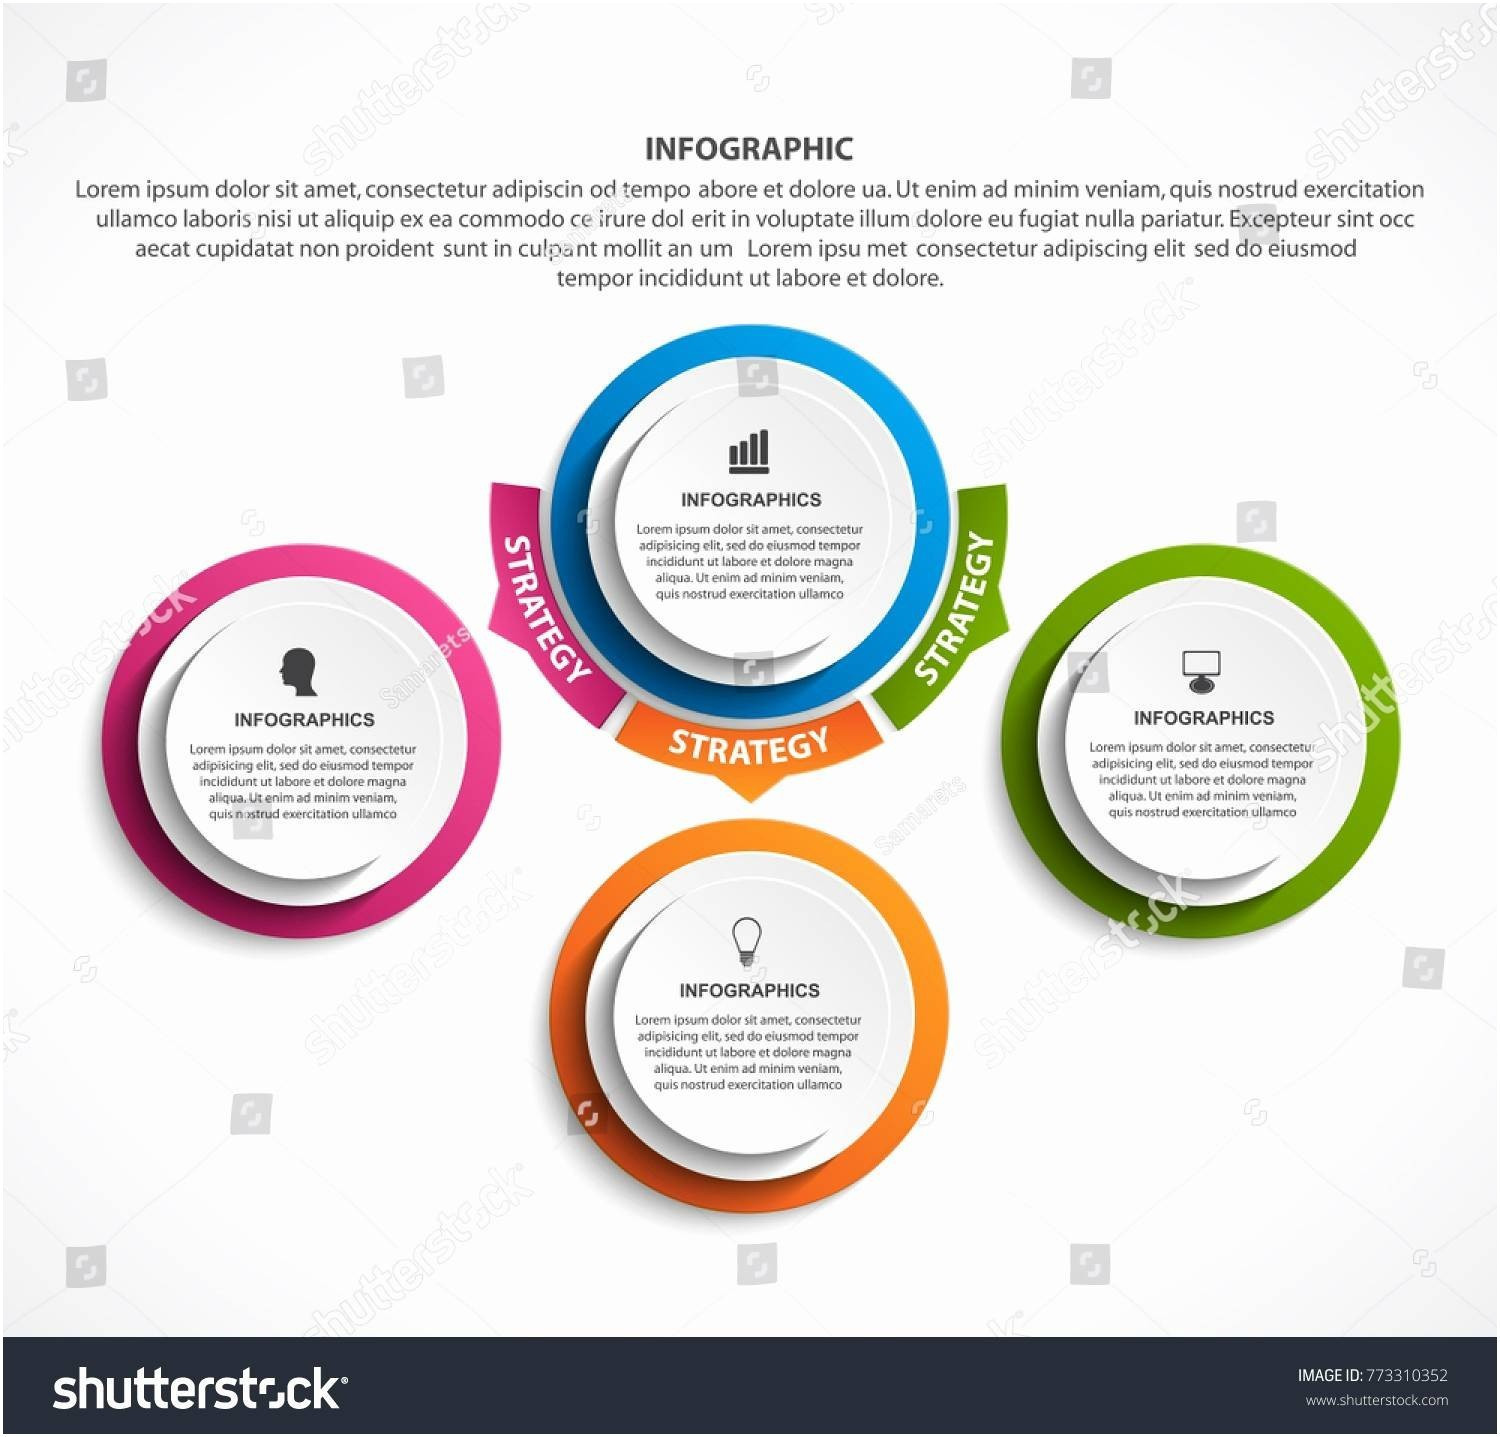 Absolutely free resume builder, absolutely free resume builder, best absolutely free resume builder 2019 , absolutely free downloadable resume builder 2020, completely free resume builder online,